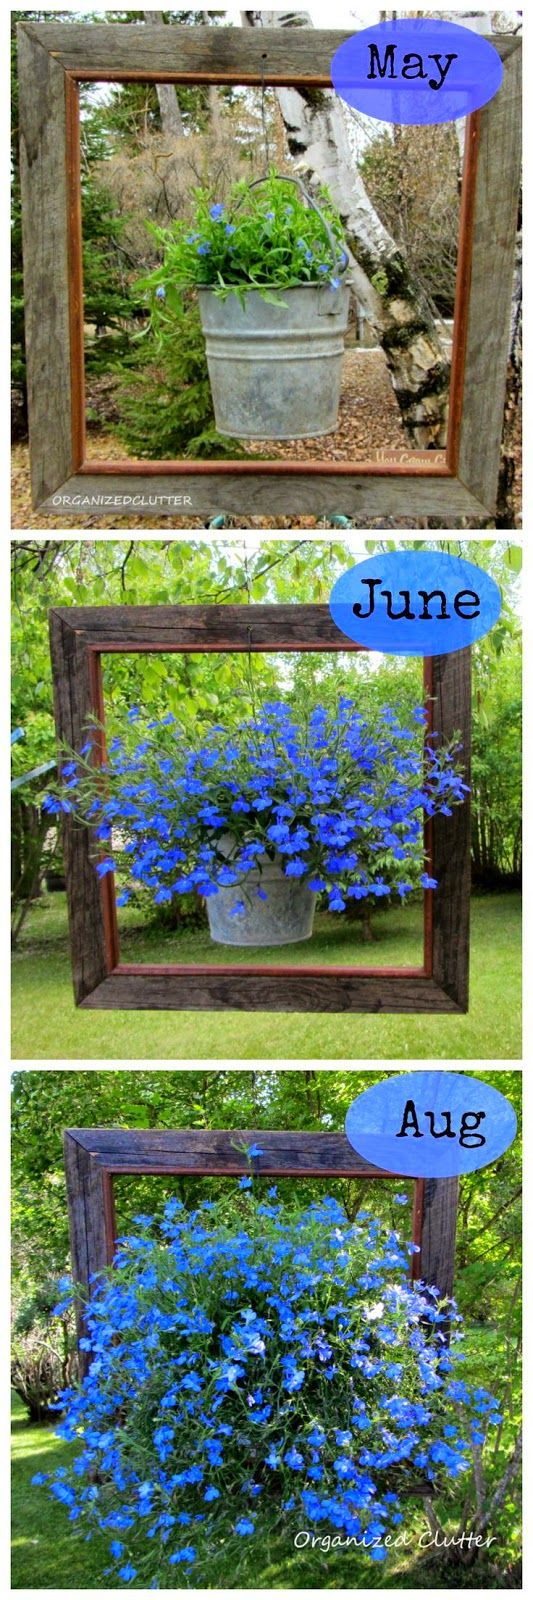 """I love this idea for my greenhouse! A different """"framed plant each month.This is will be fun! A Framed Lobelia...."""